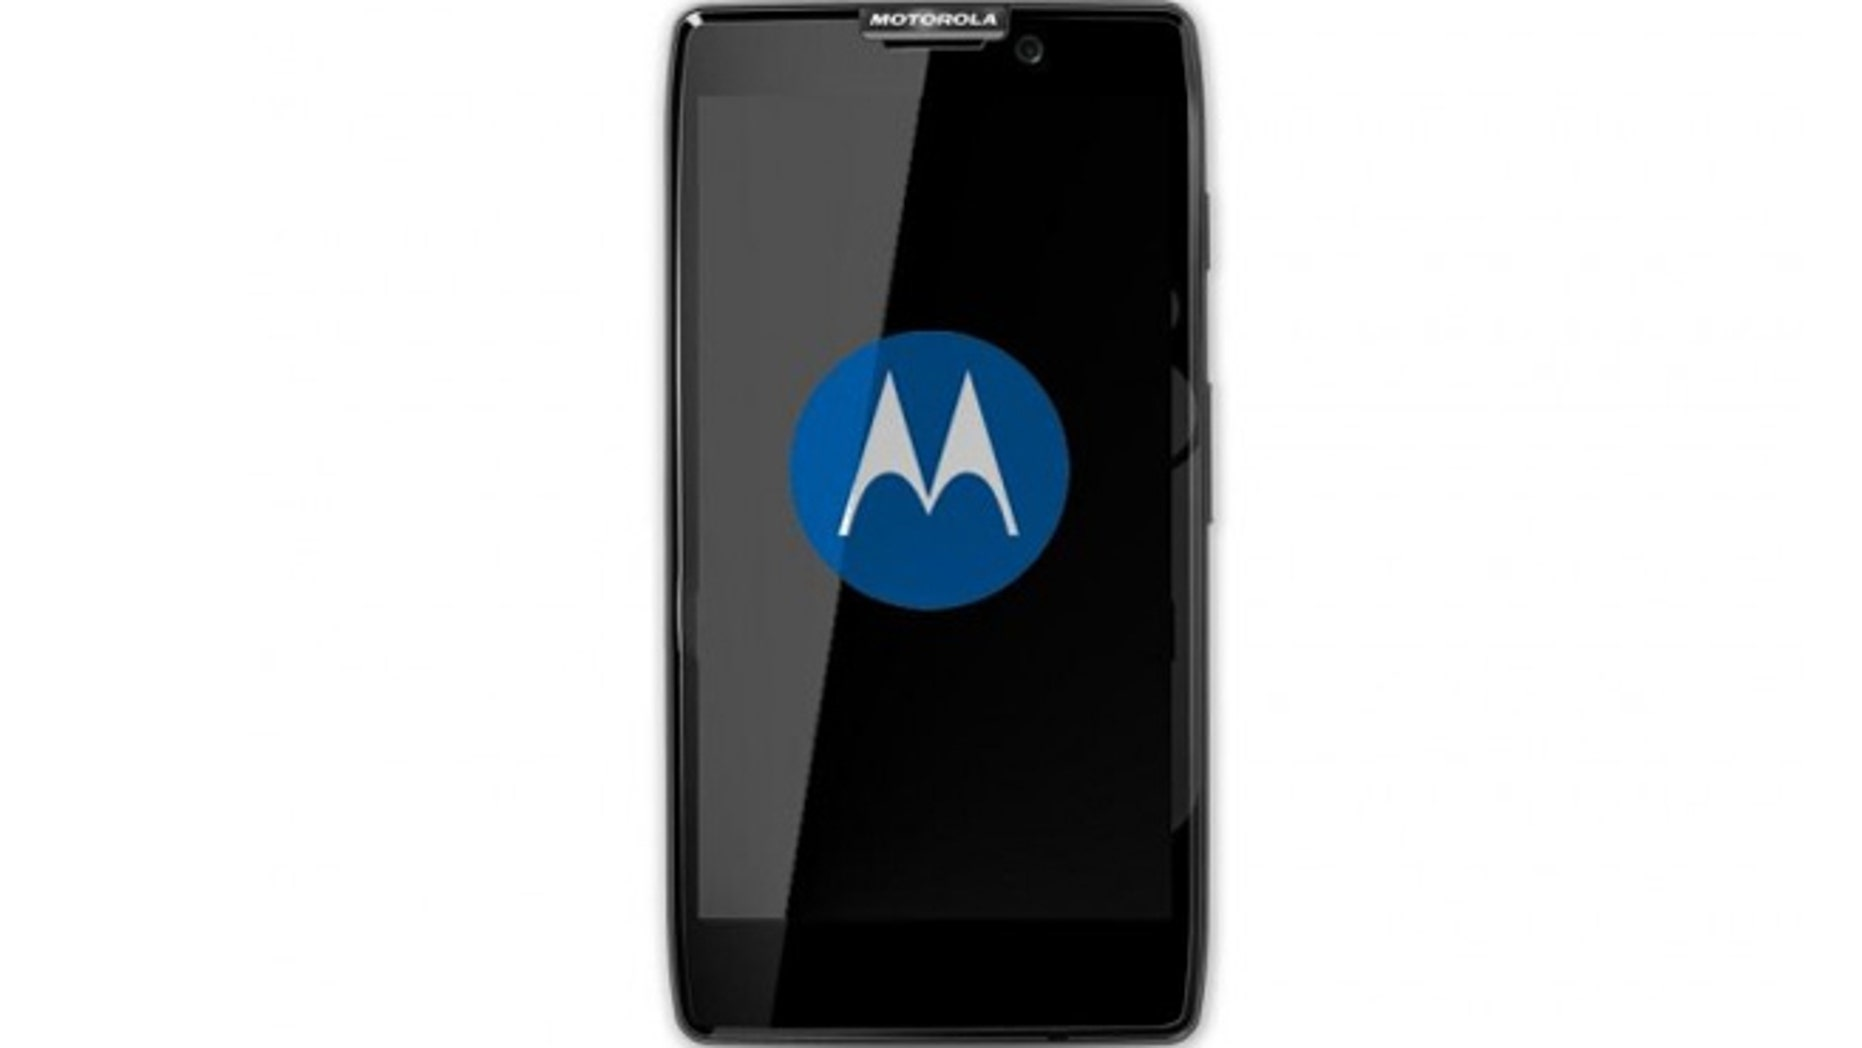 """Motorola accidentally revealed information on an unannounced  smartphone, the Droid Ultra. While the company did not post a picture, they did release information on the phone writing, """"Available in a bunch of glossy colors, this high-grade DuPont™ Kevlar body proves you can be even thinner and still be tough as steel."""""""